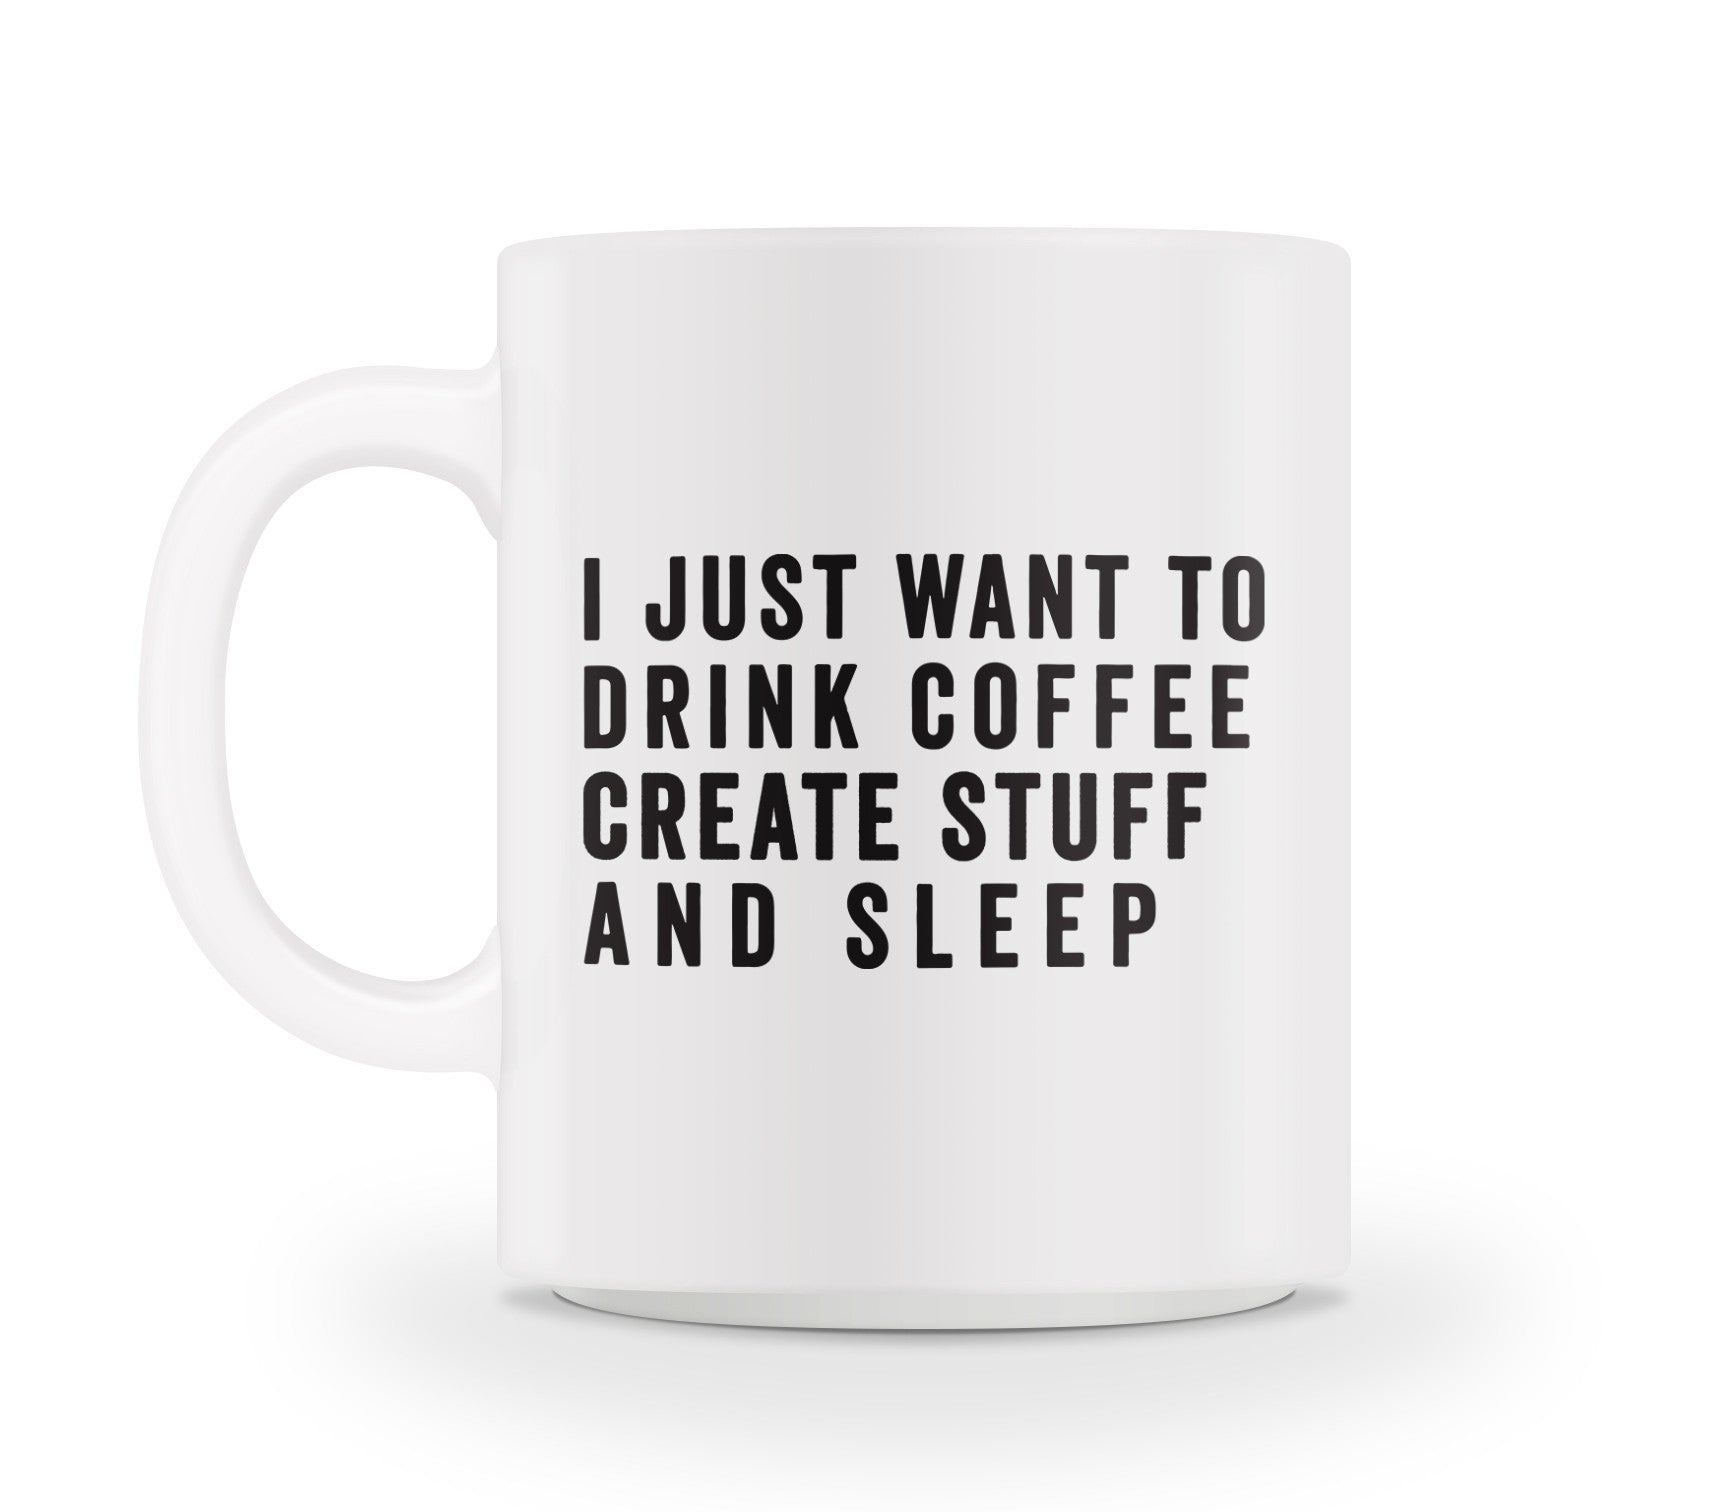 I just want to drink coffee, create stuff and sleep!